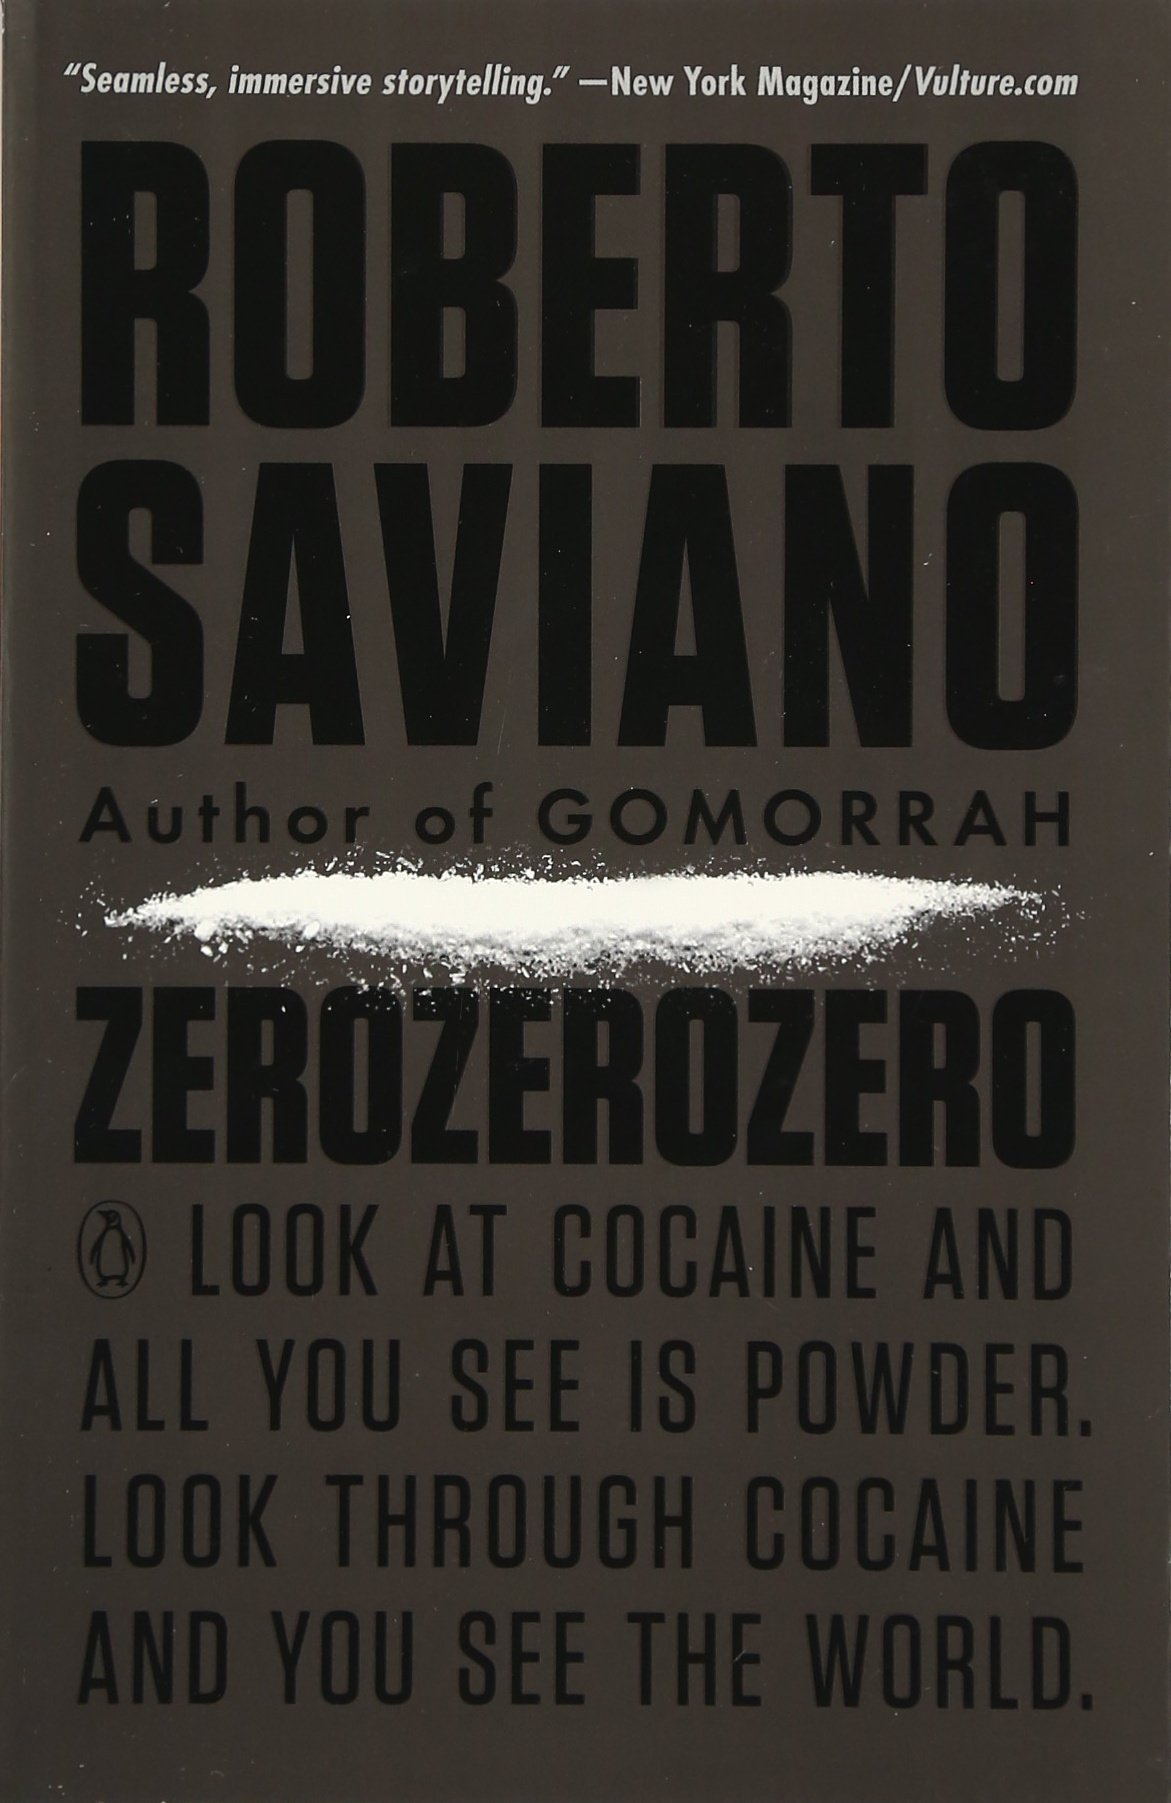 Look Through Cocaine And You See The World (penguin History American  Life): Roberto Saviano, Virginia Jewiss: 9780143109372: Amazon: Books